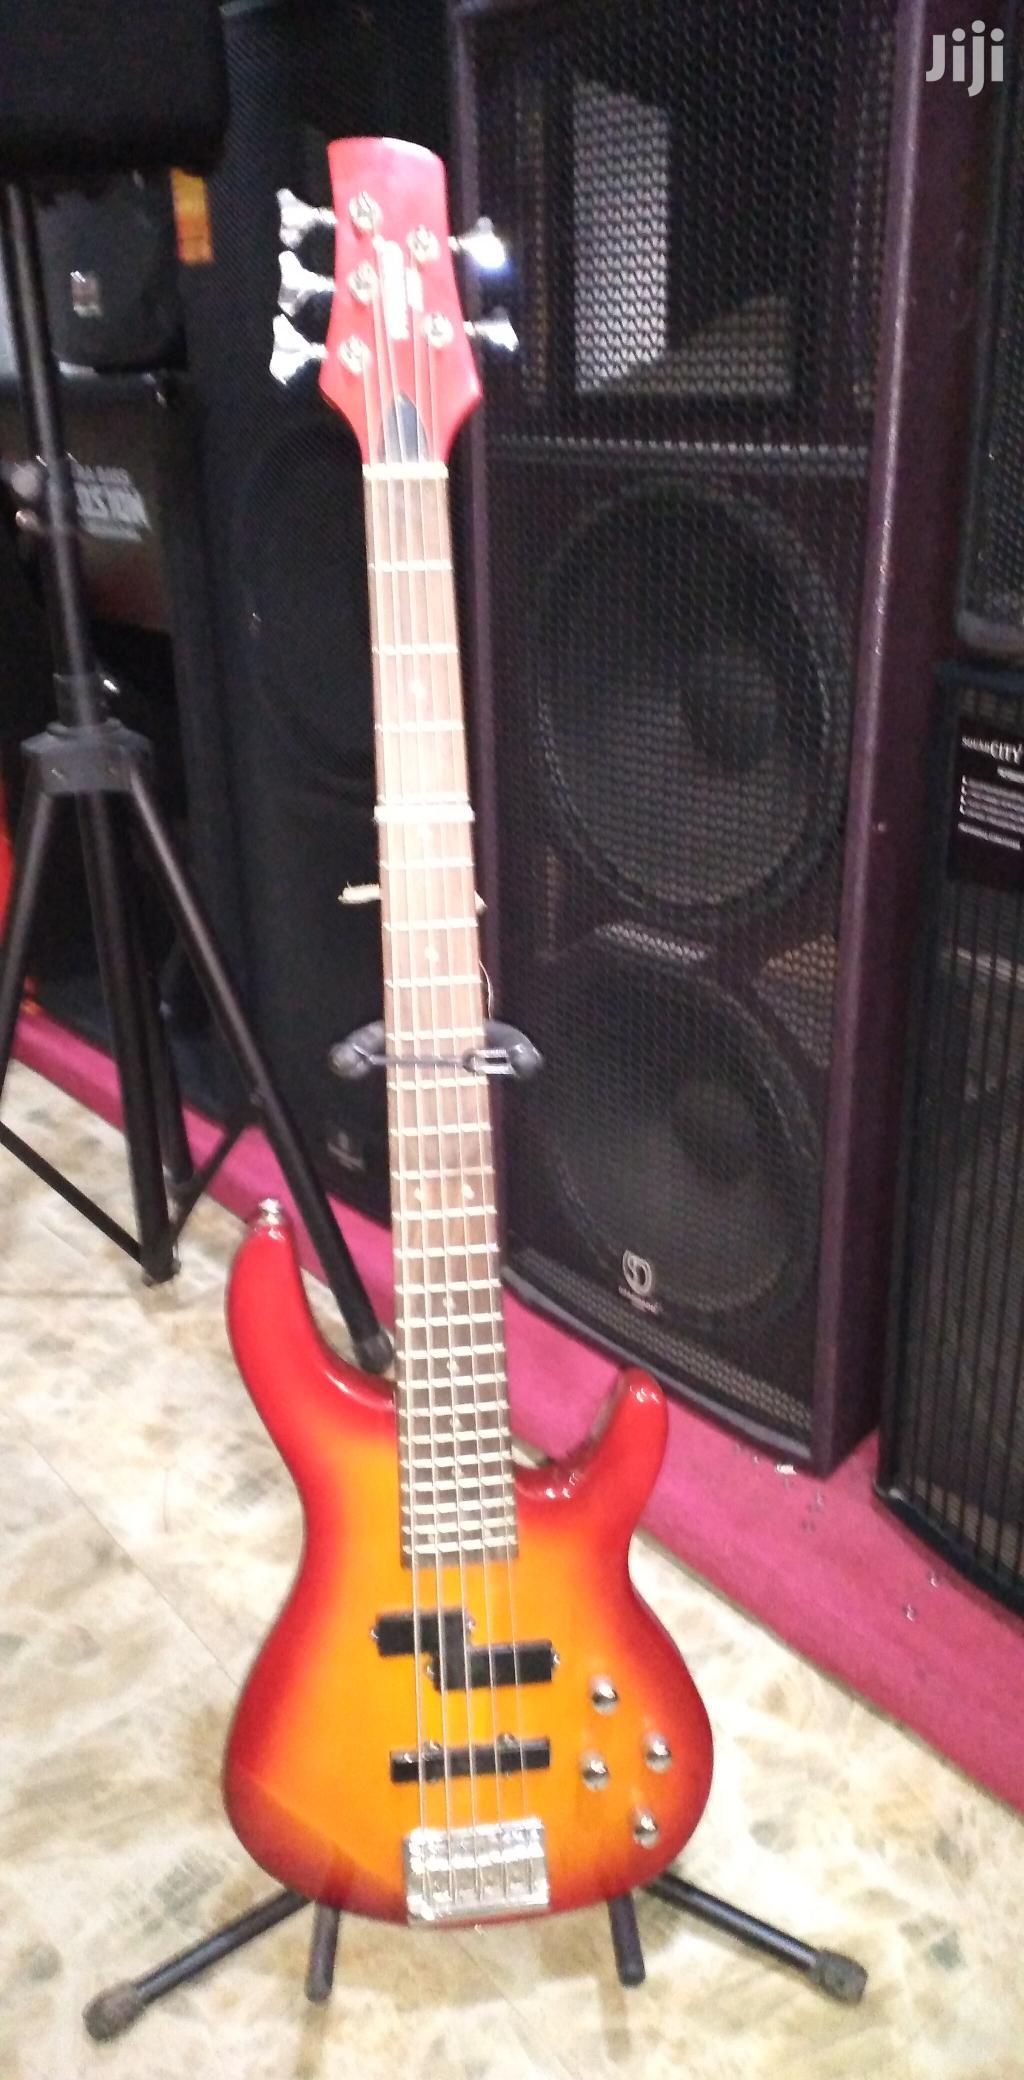 Bass Guitar Series | Musical Instruments & Gear for sale in Lagos State, Nigeria